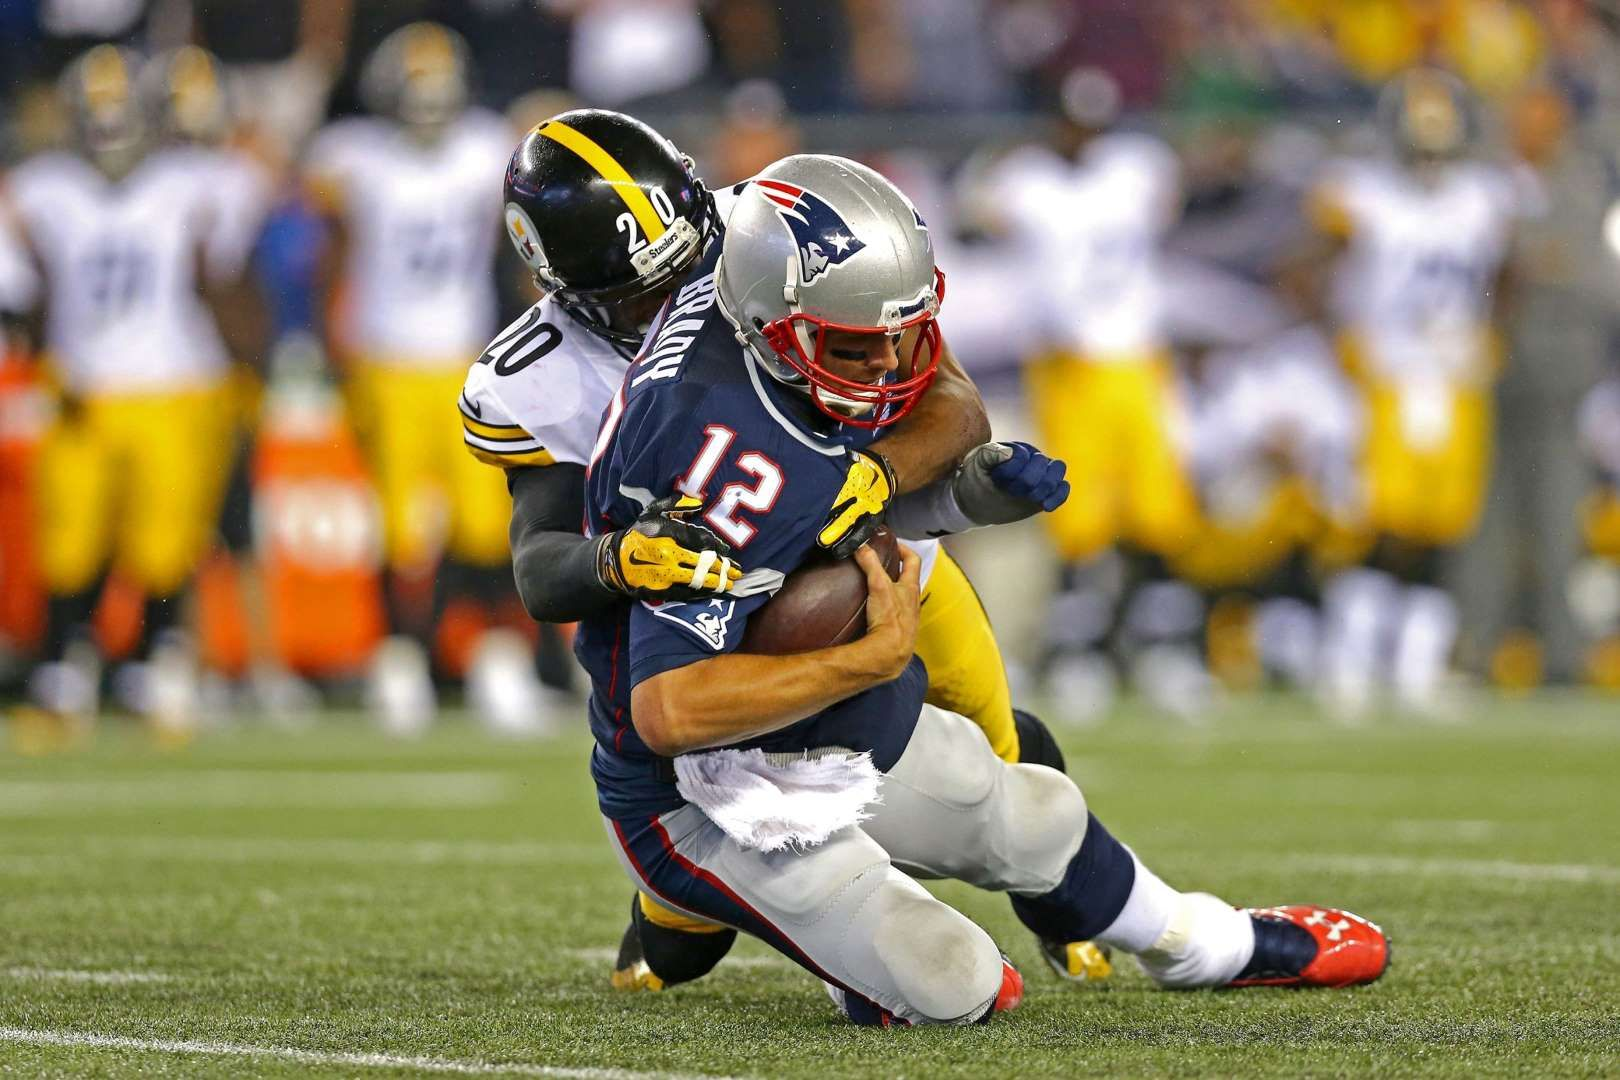 2b4849c95 Brady takes a sack - Will Allen #20 of the Pittsburgh Steelers sacks Tom  Brady #12 of the New England Patriots in the second half at Gillette  Stadium on ...